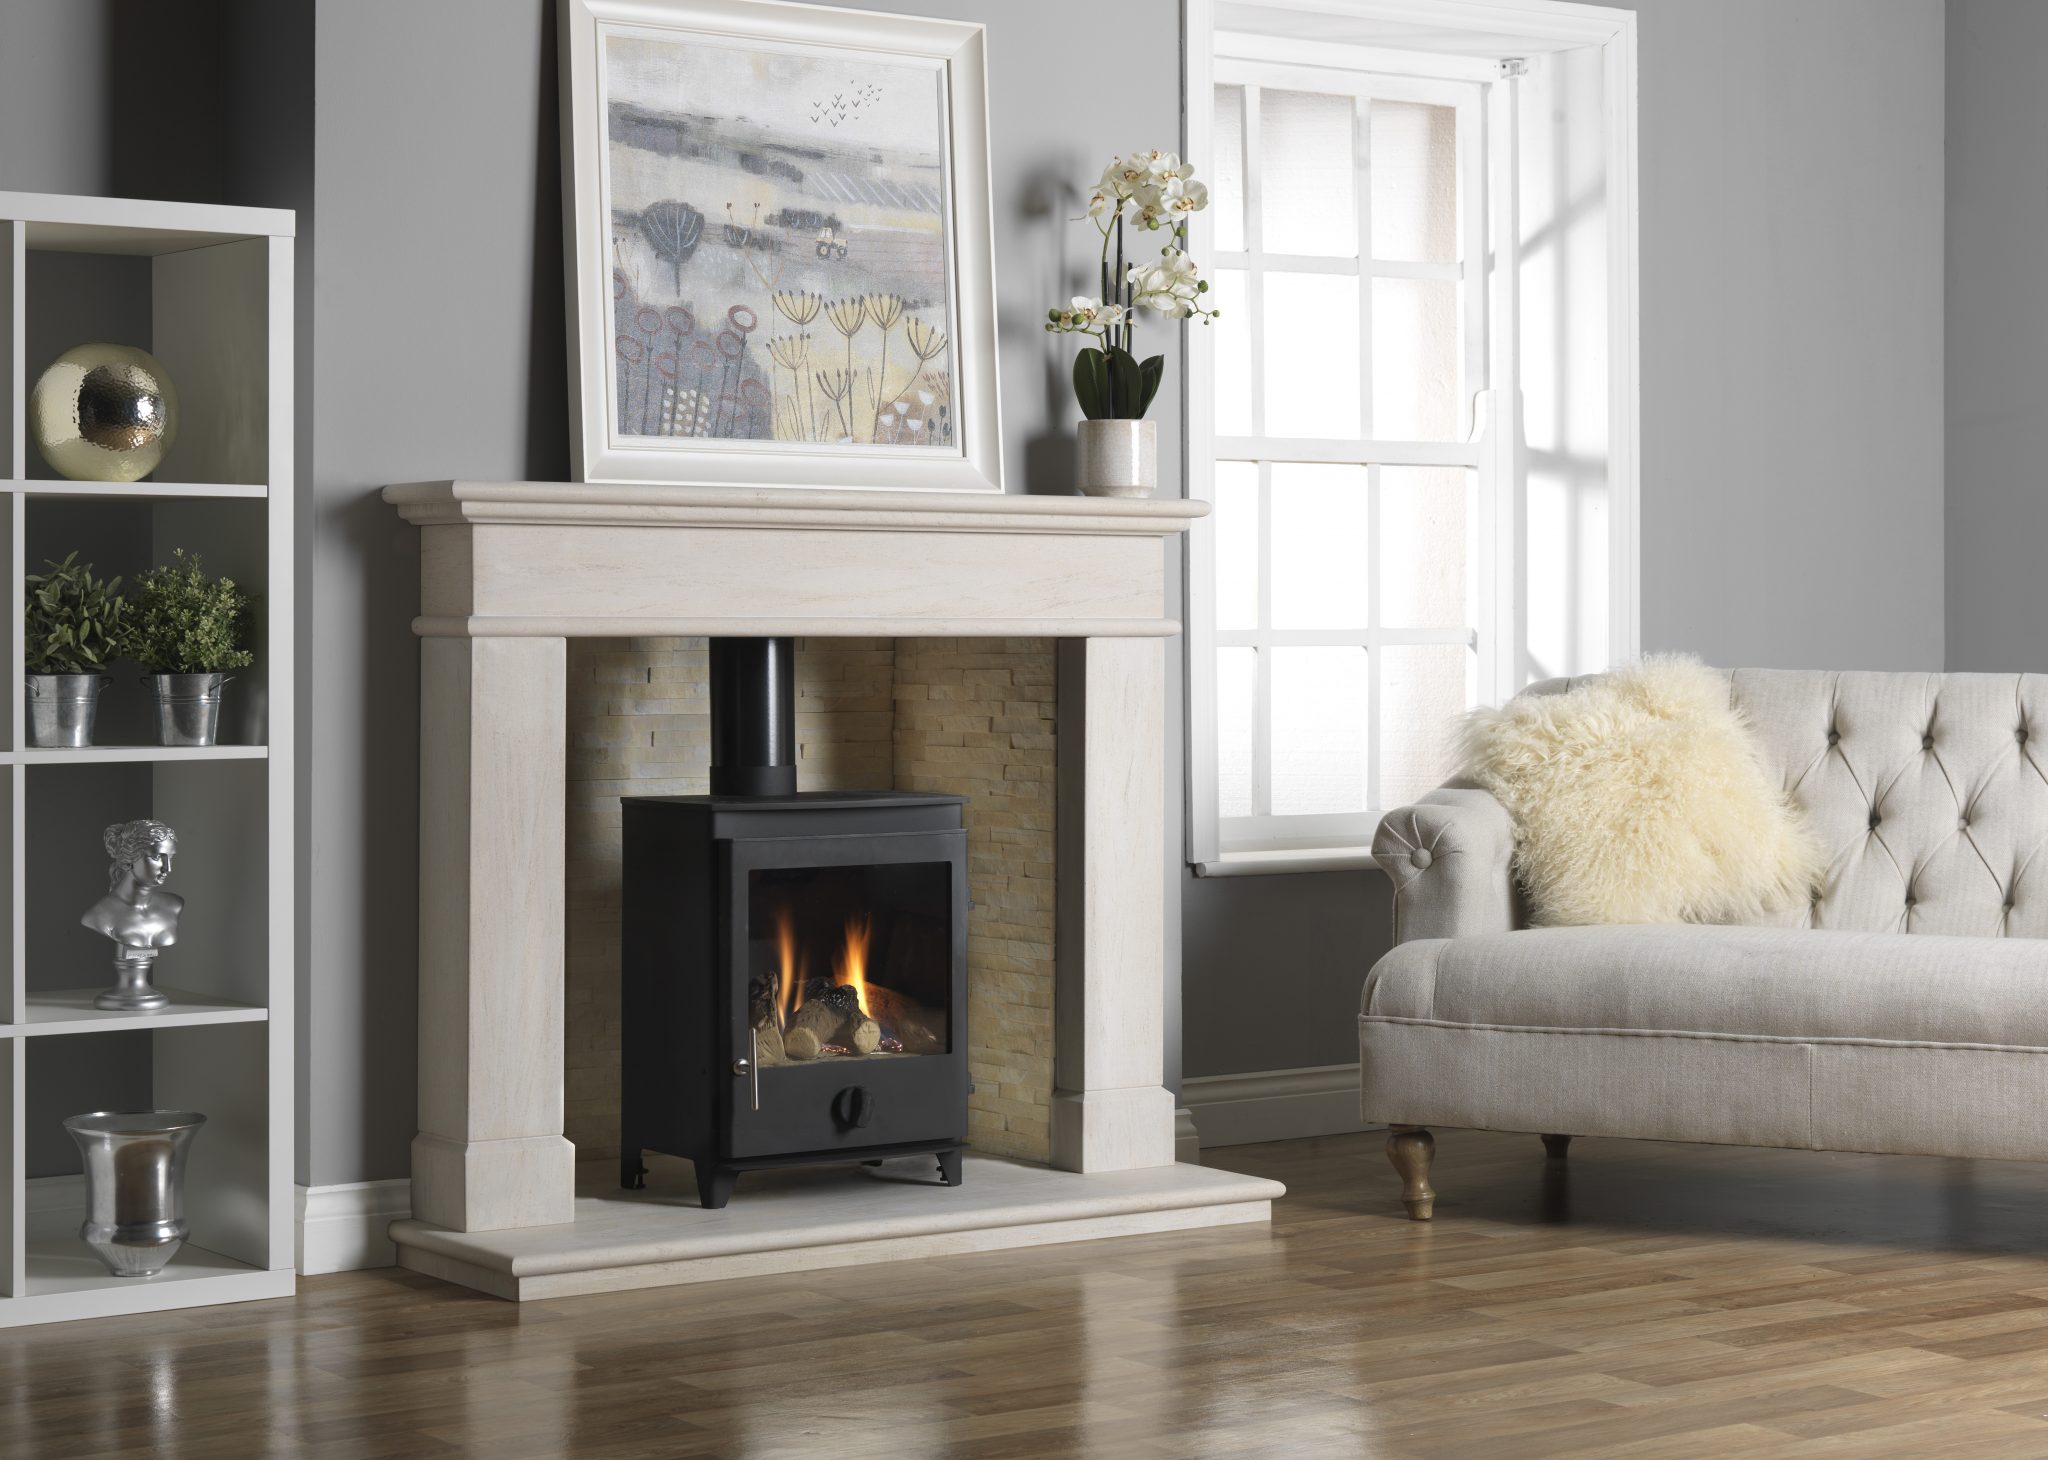 Paragon Gas stove BF or CF